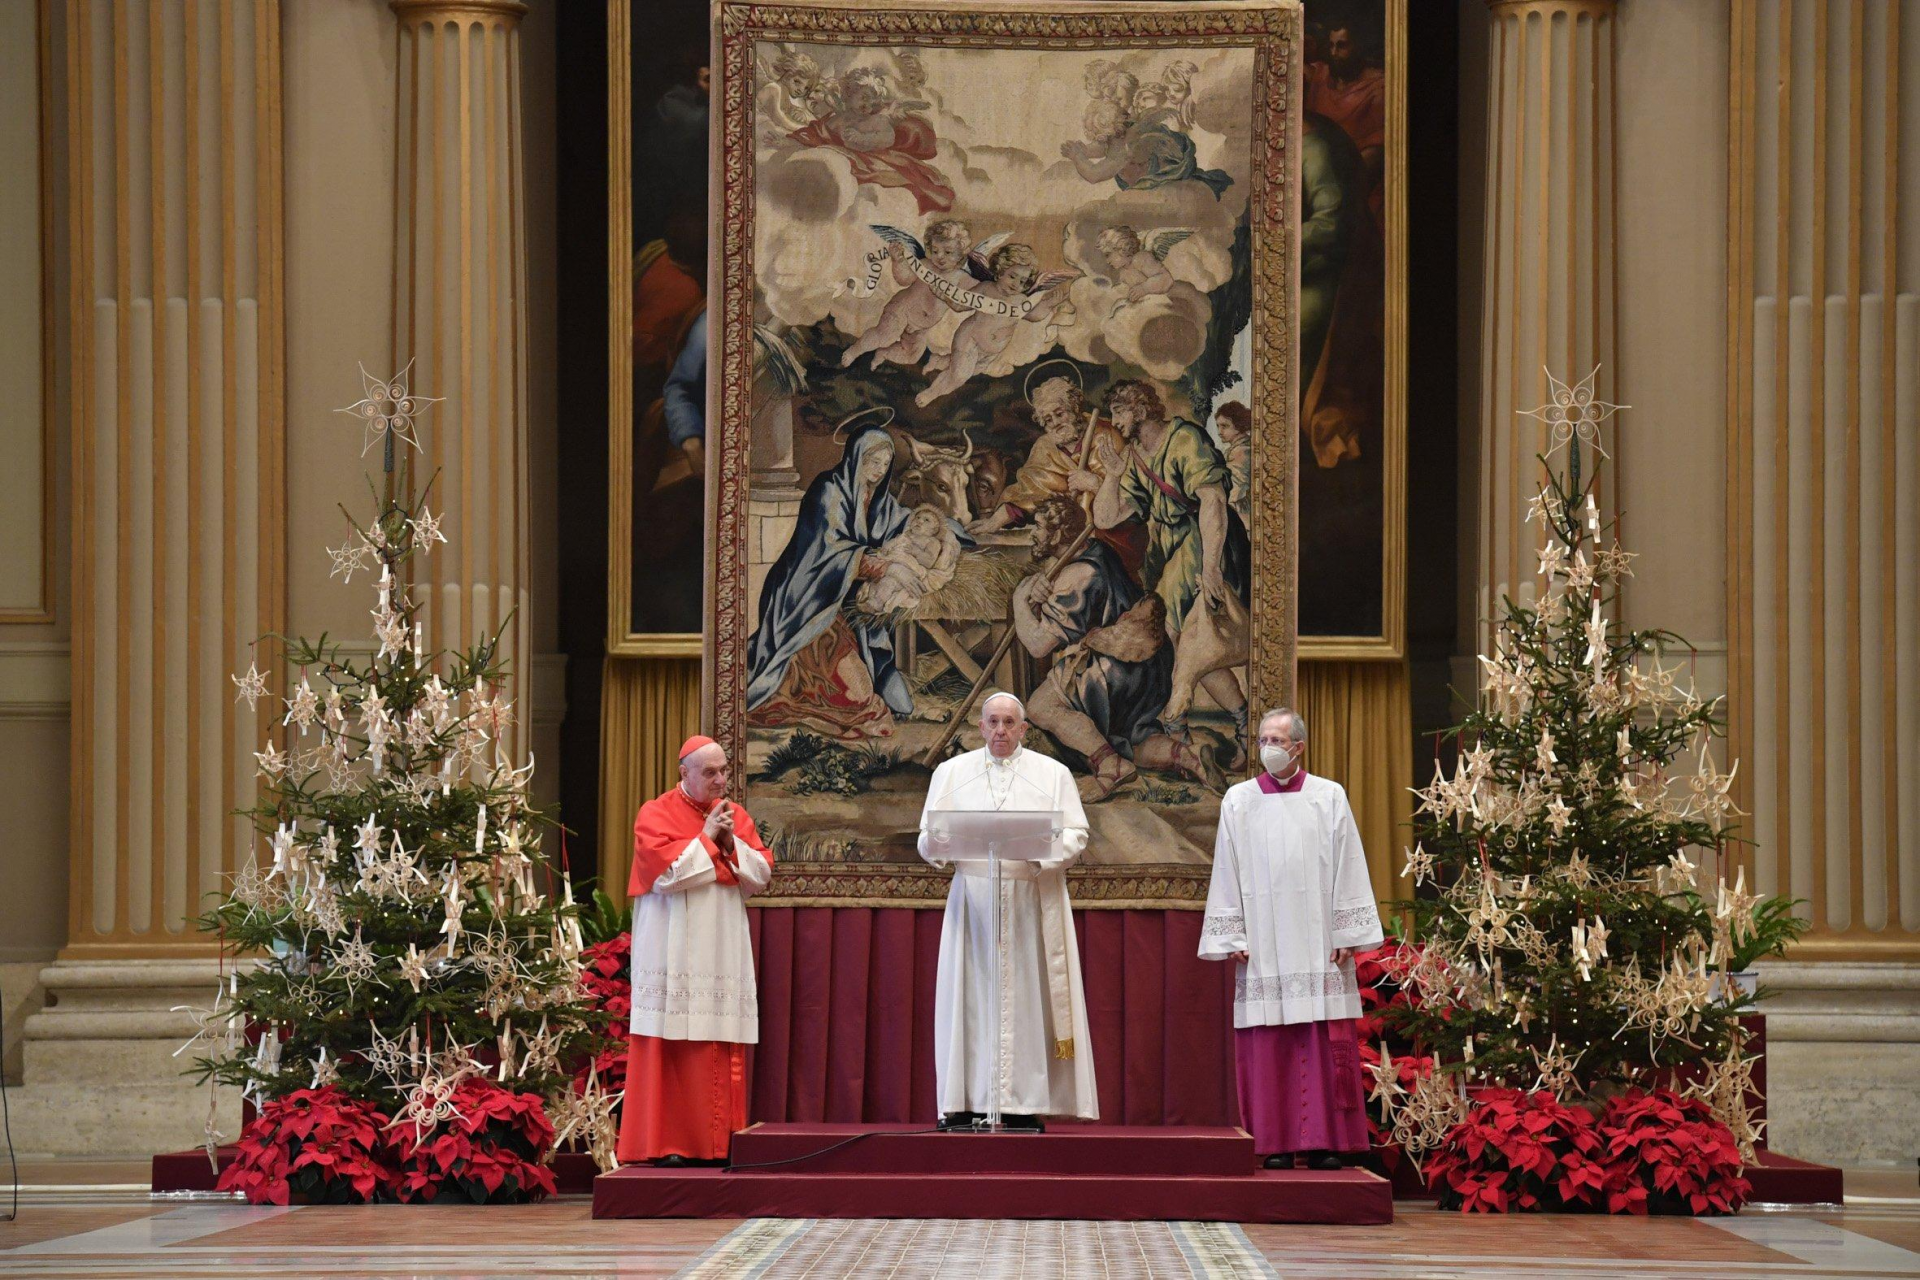 In Christmas message, Pope Francis calls for COVID-19 vaccines to be shared